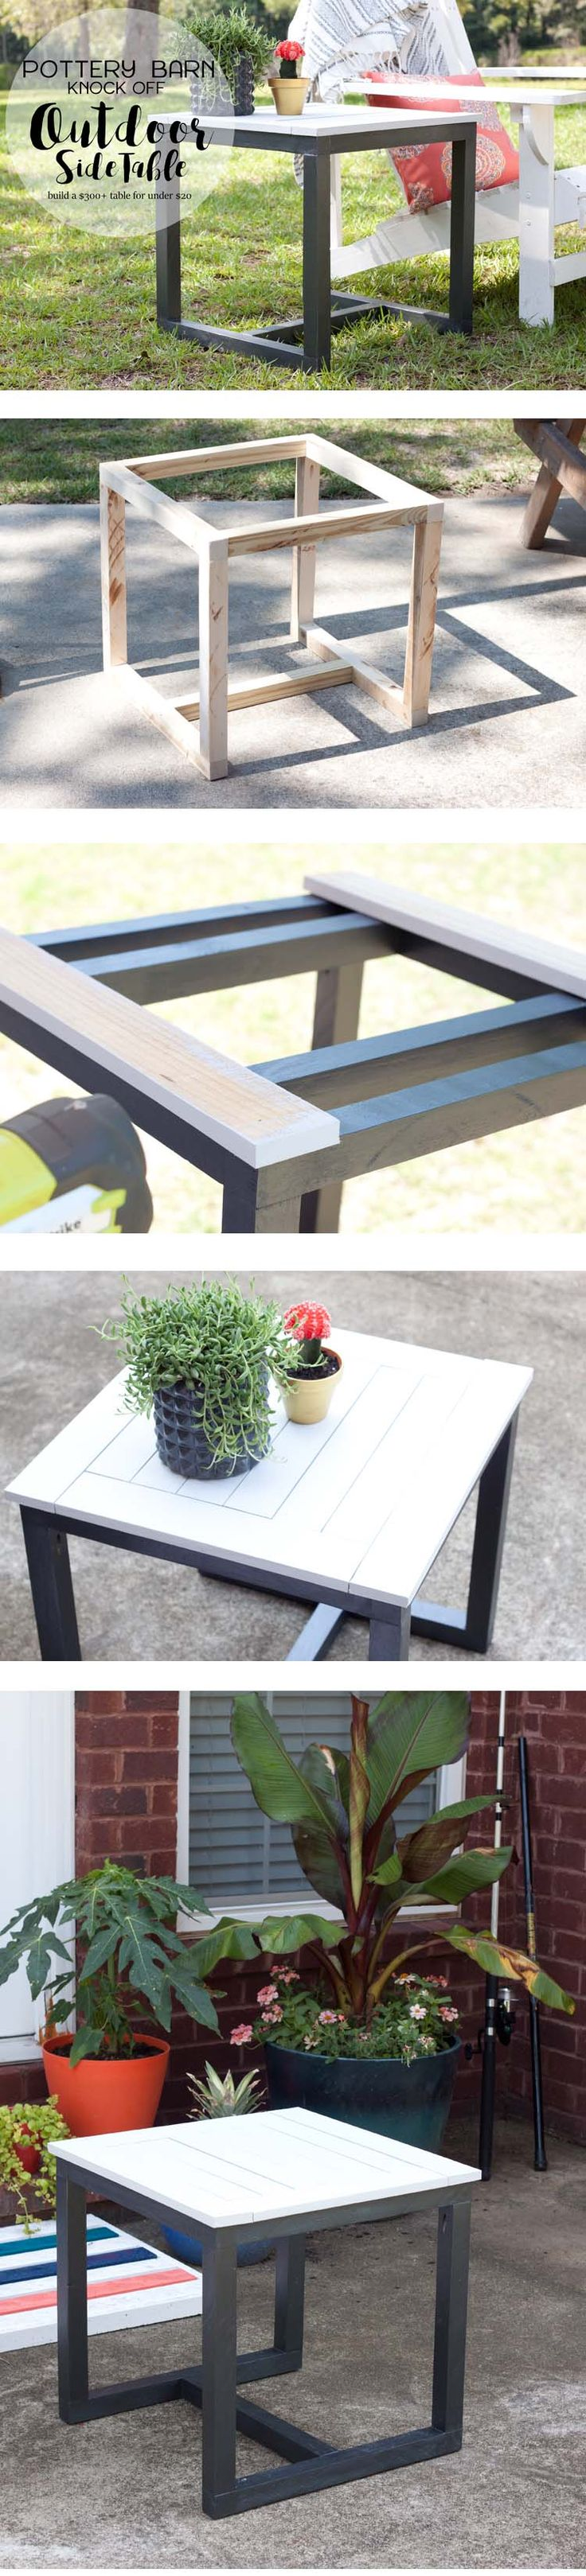 diy outdoor side table outdoor side table side tables side table redo